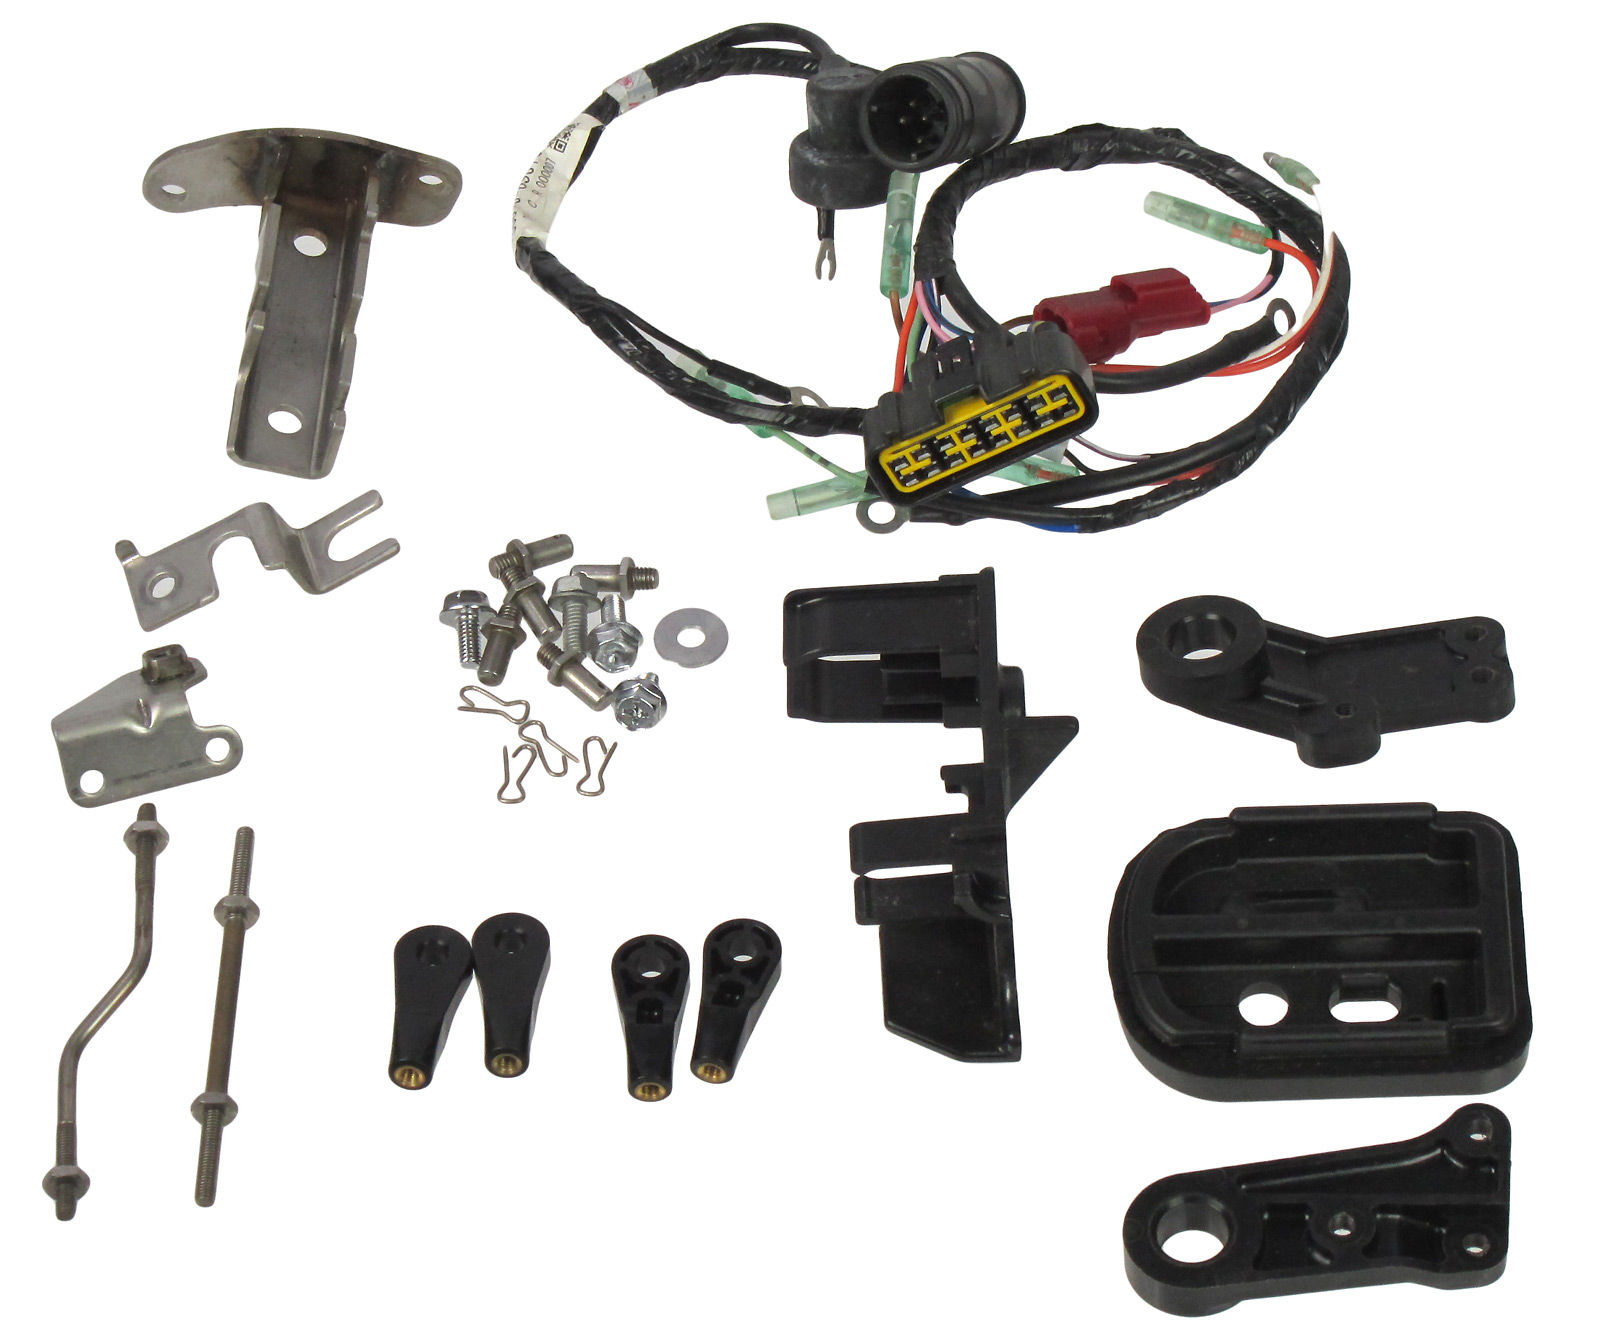 Suzuki DF25 (3TS) motor conversion kit für fernbedienung